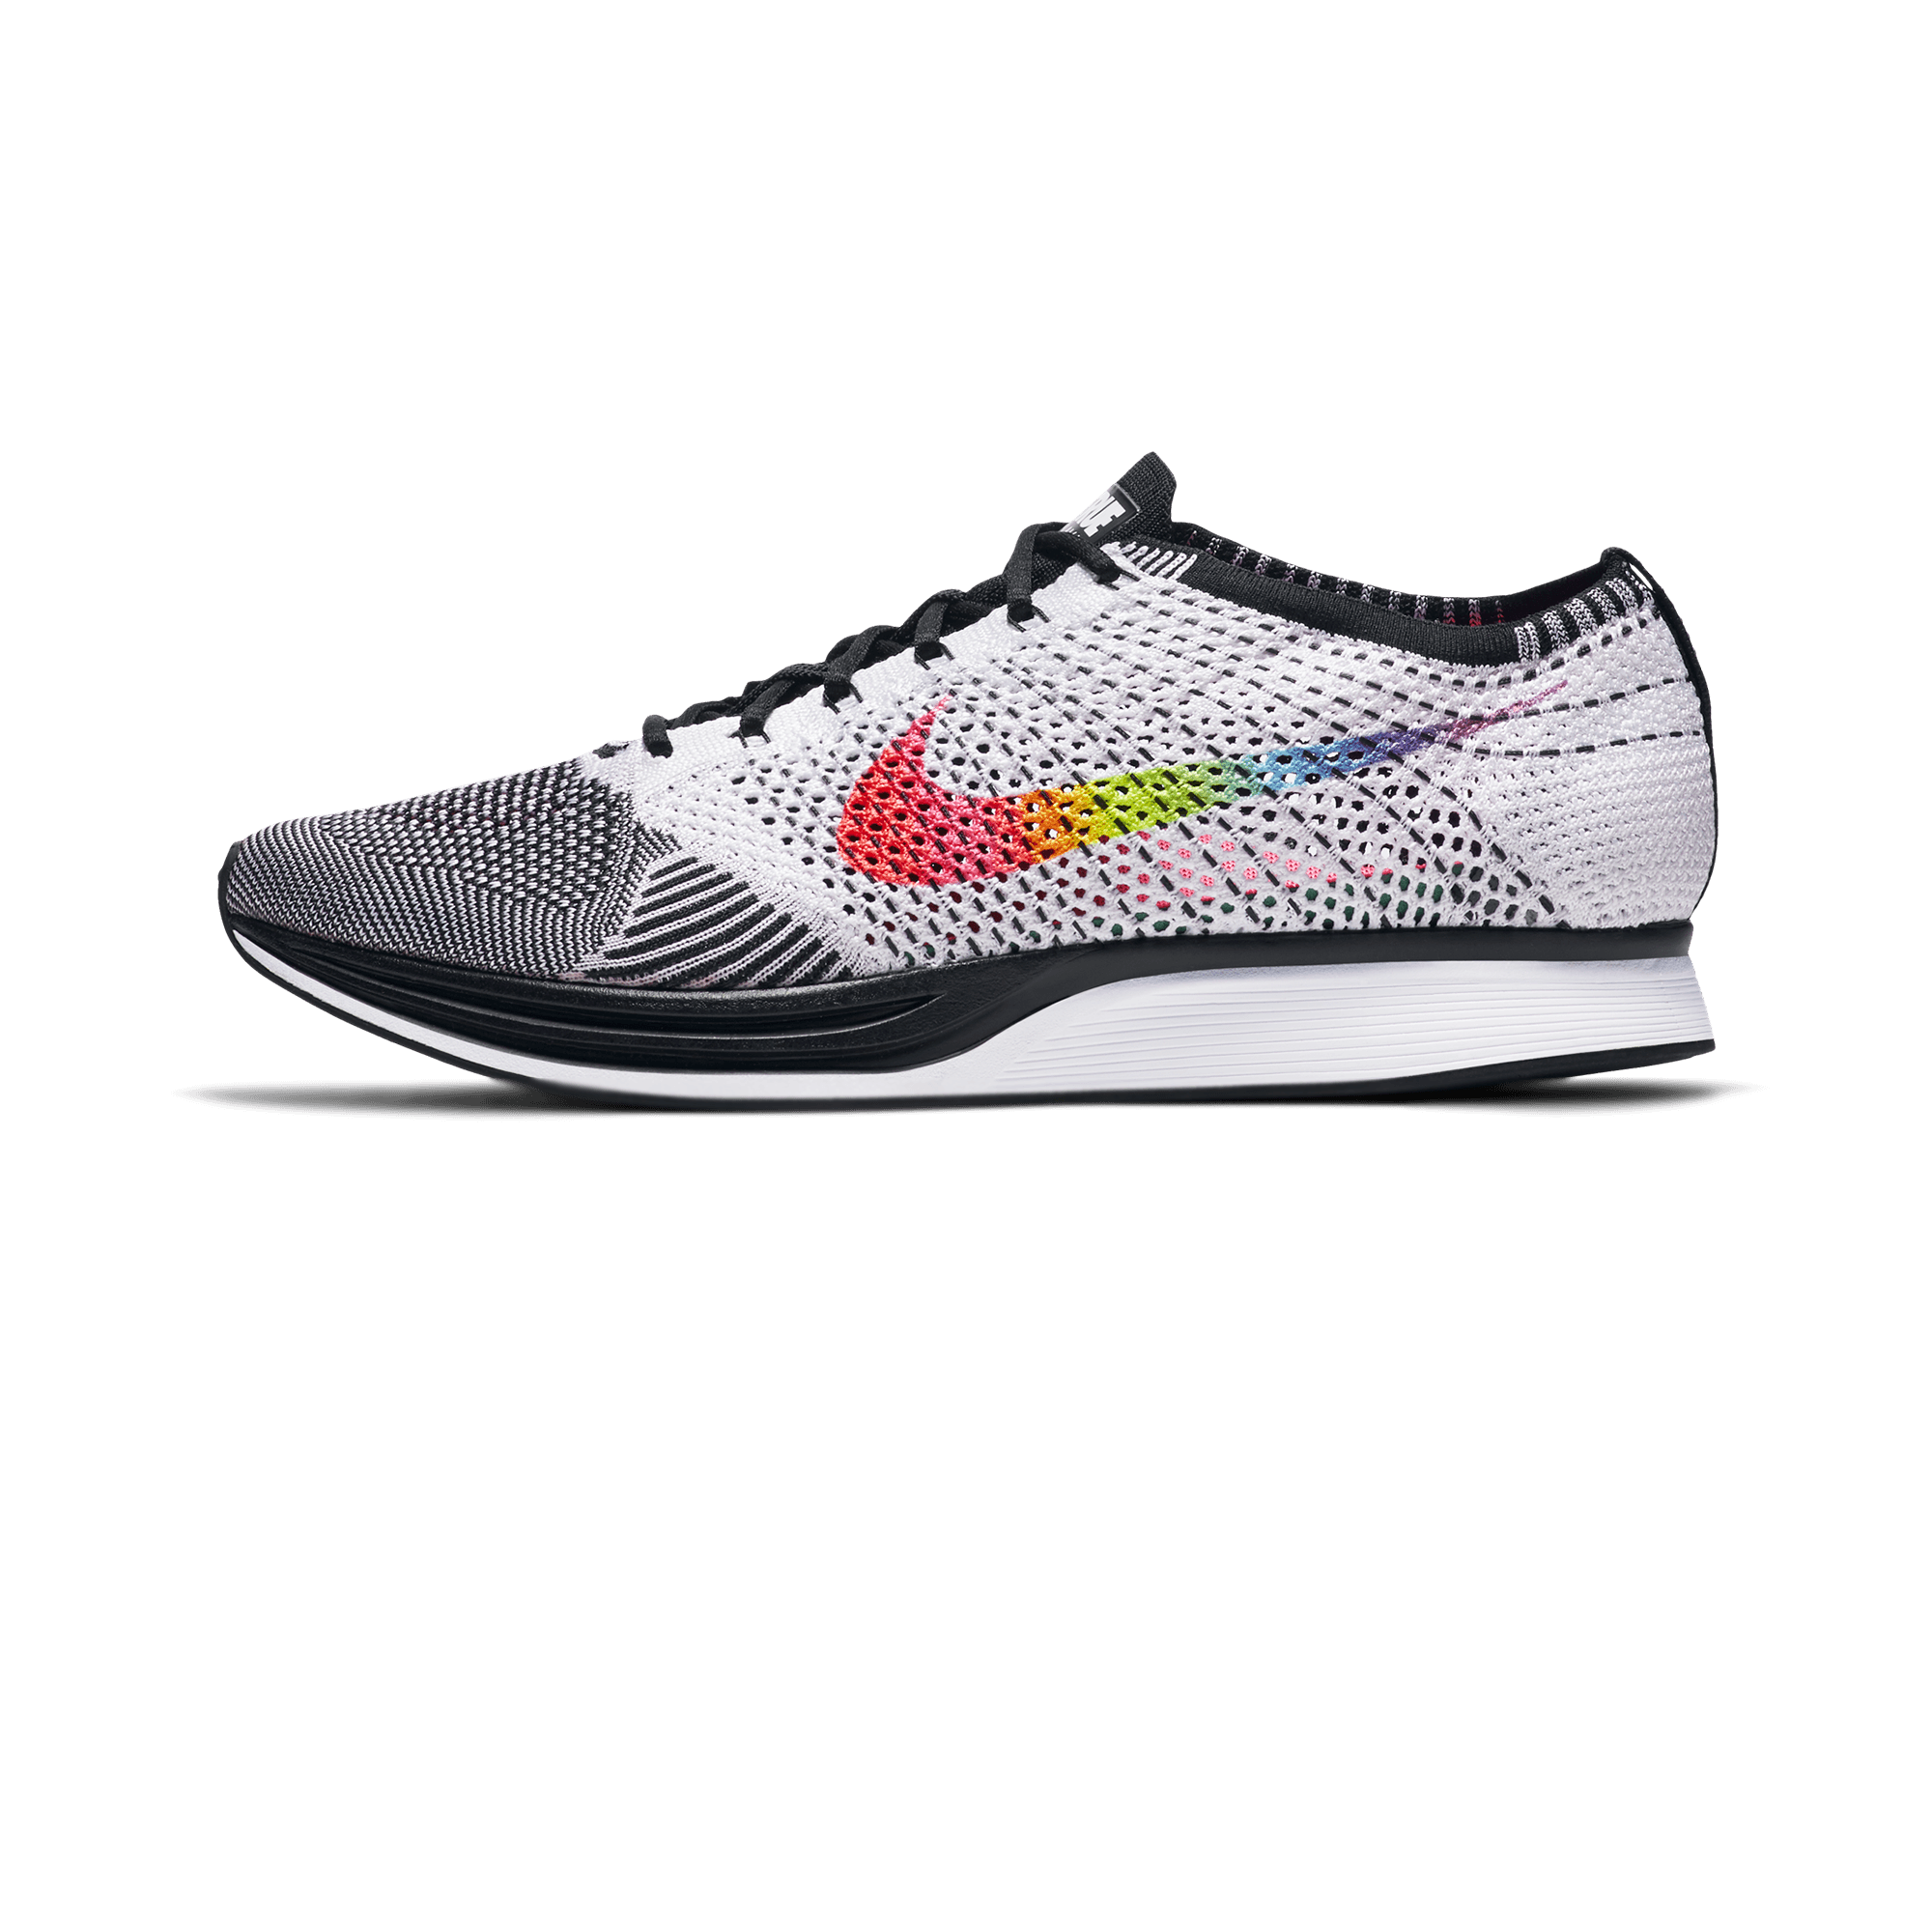 e3e87d5970007 Nike Flyknit Racer Be True Men s Authletic Running Shoes